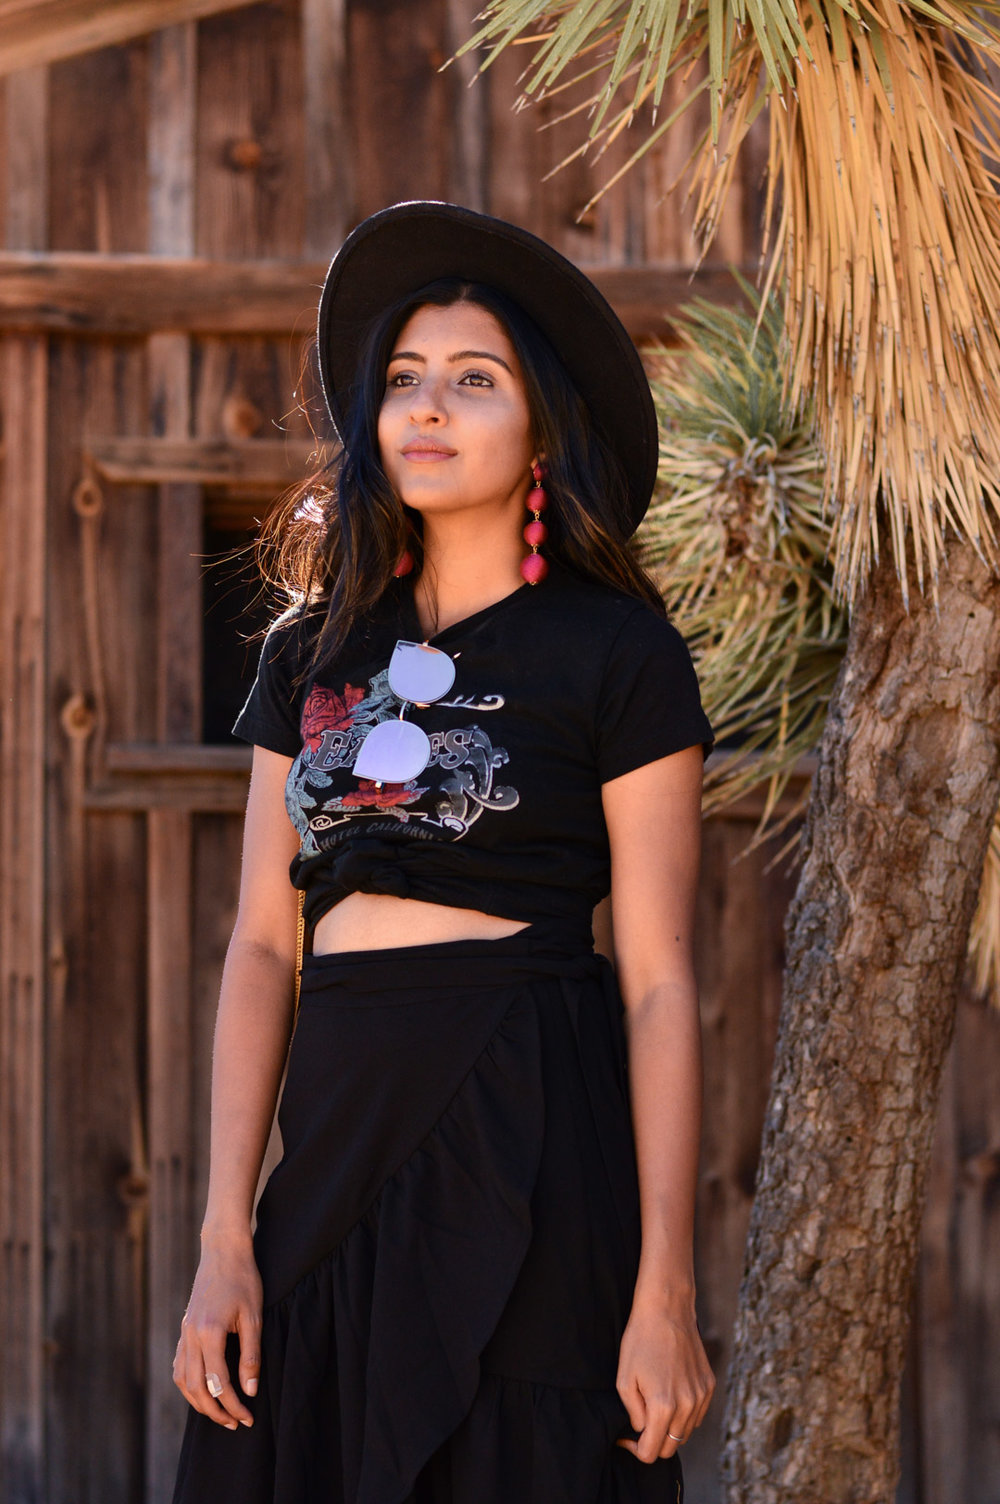 western-vibes-pioneertown-california-band-tee-blogger-fall-outfit 6